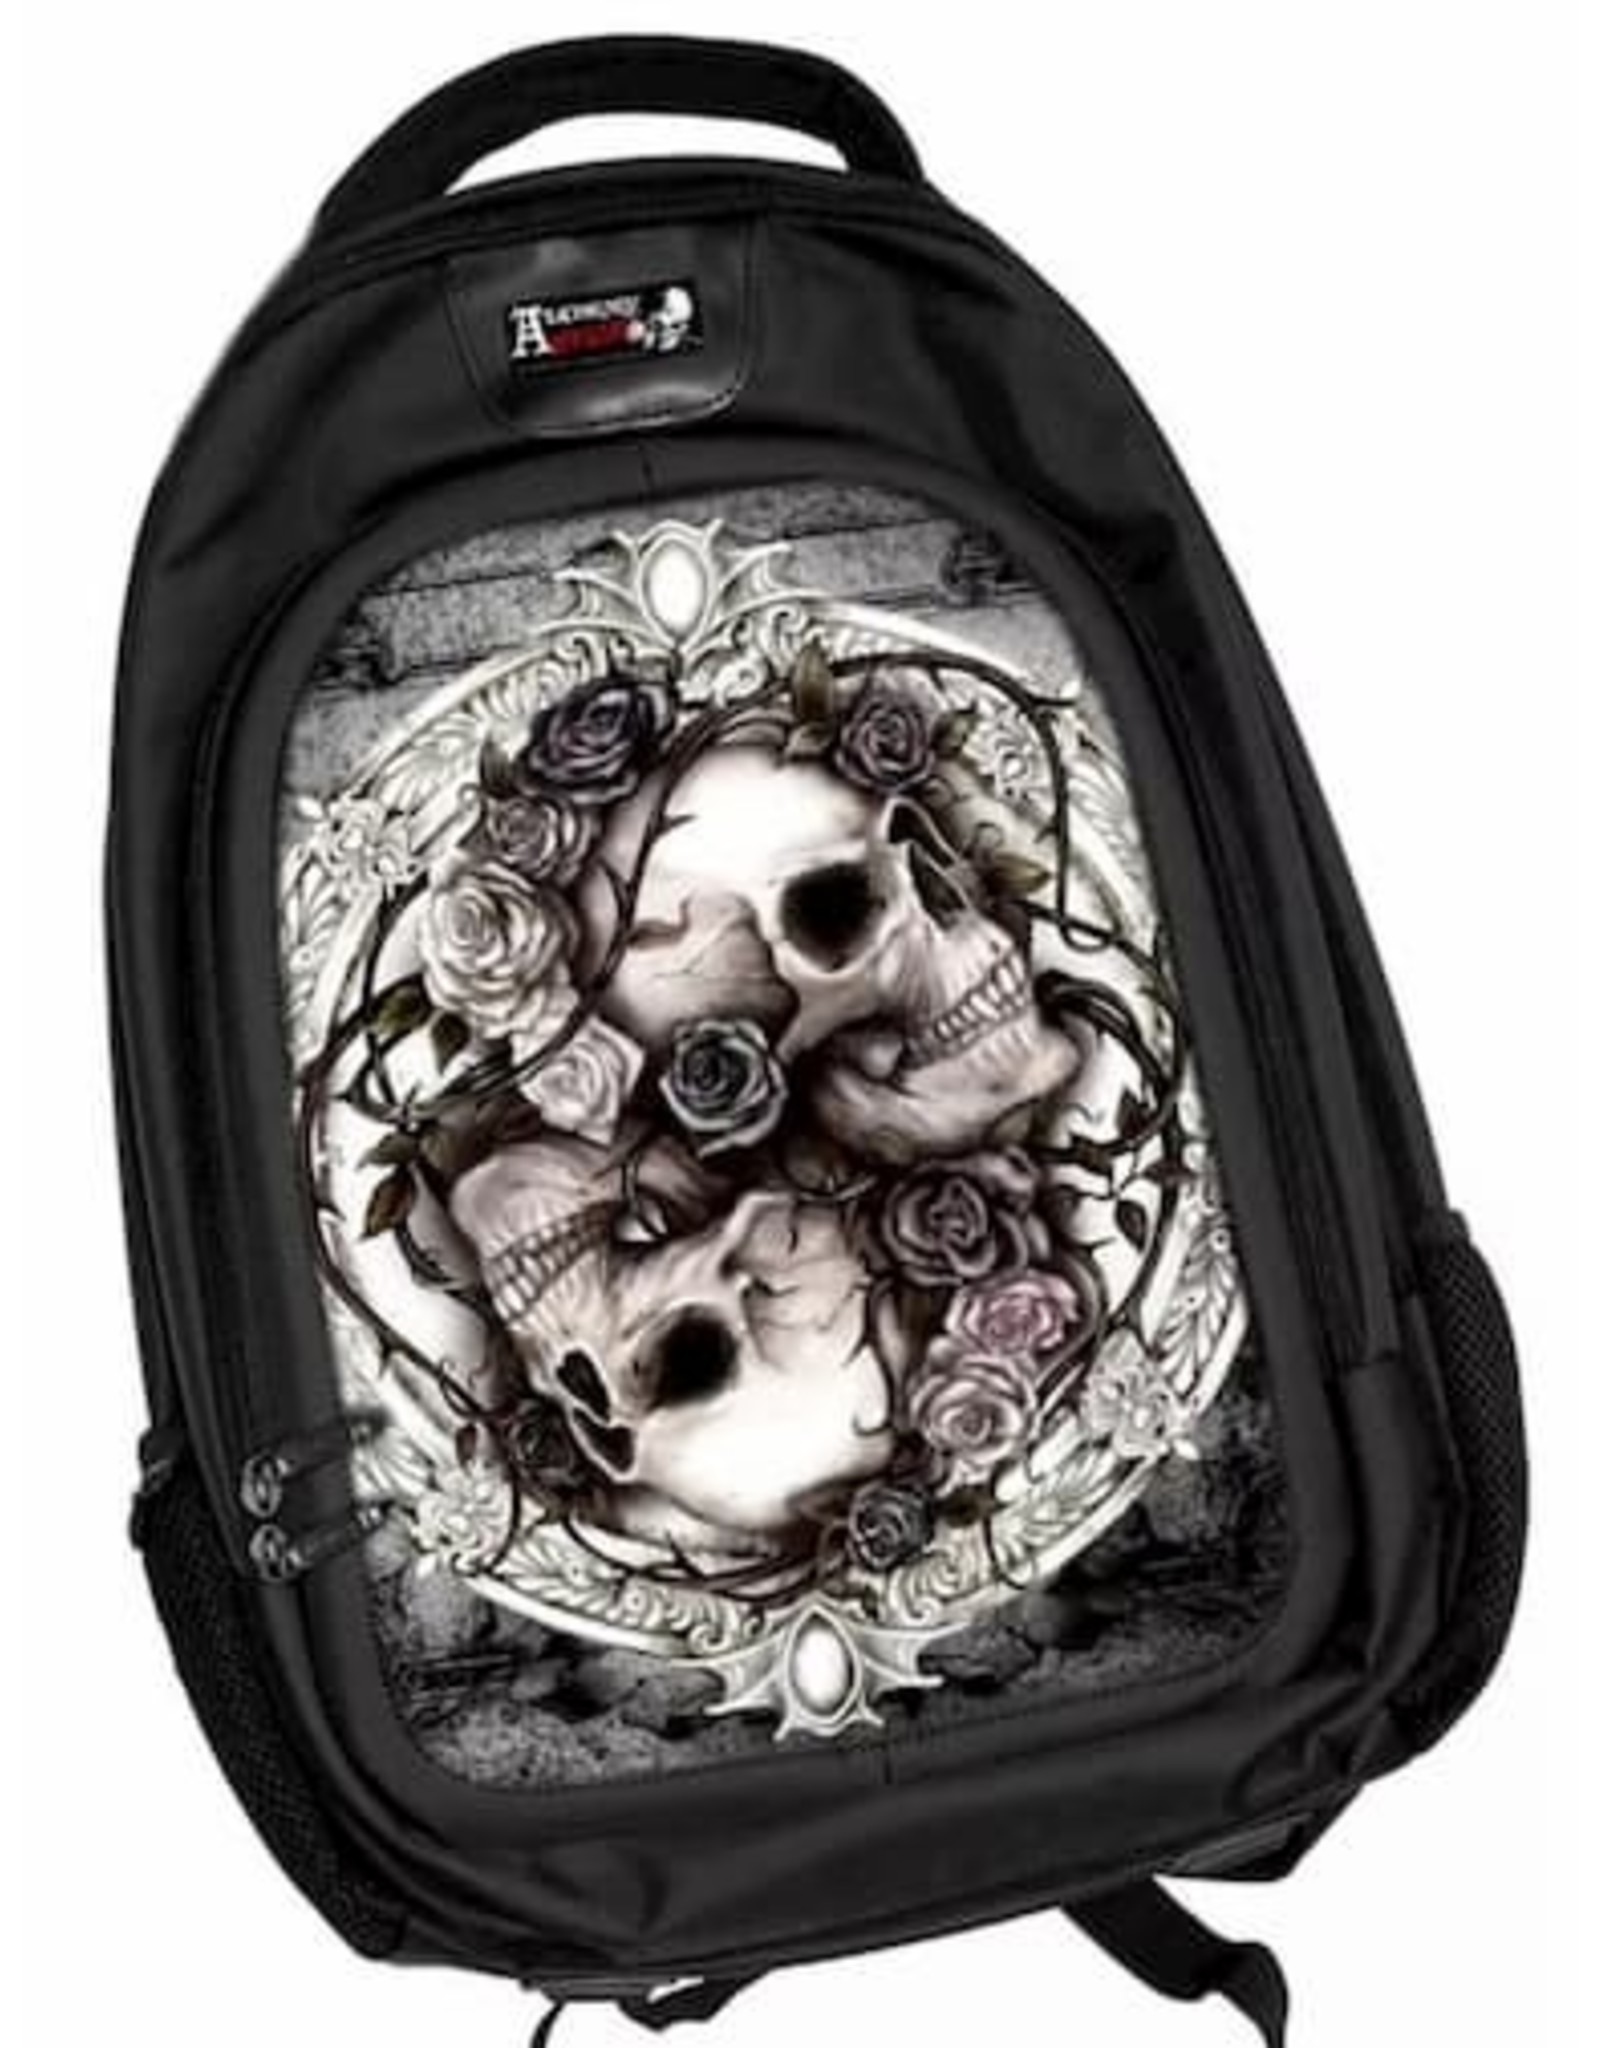 Alchemy 3D Bags and Backpacks - 3D lenticular Gothic backpack Diosurri, Alchemy